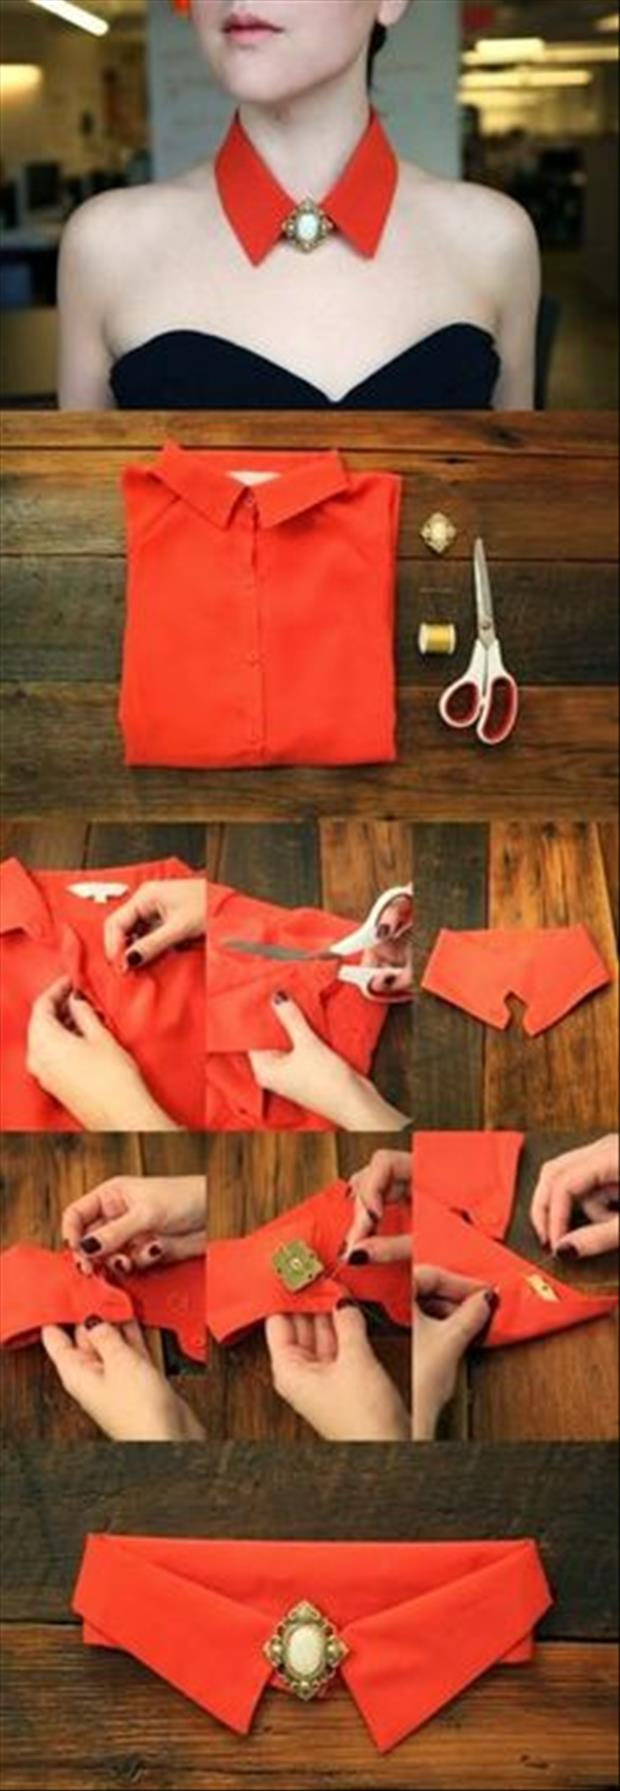 do it yourself crafts (3)